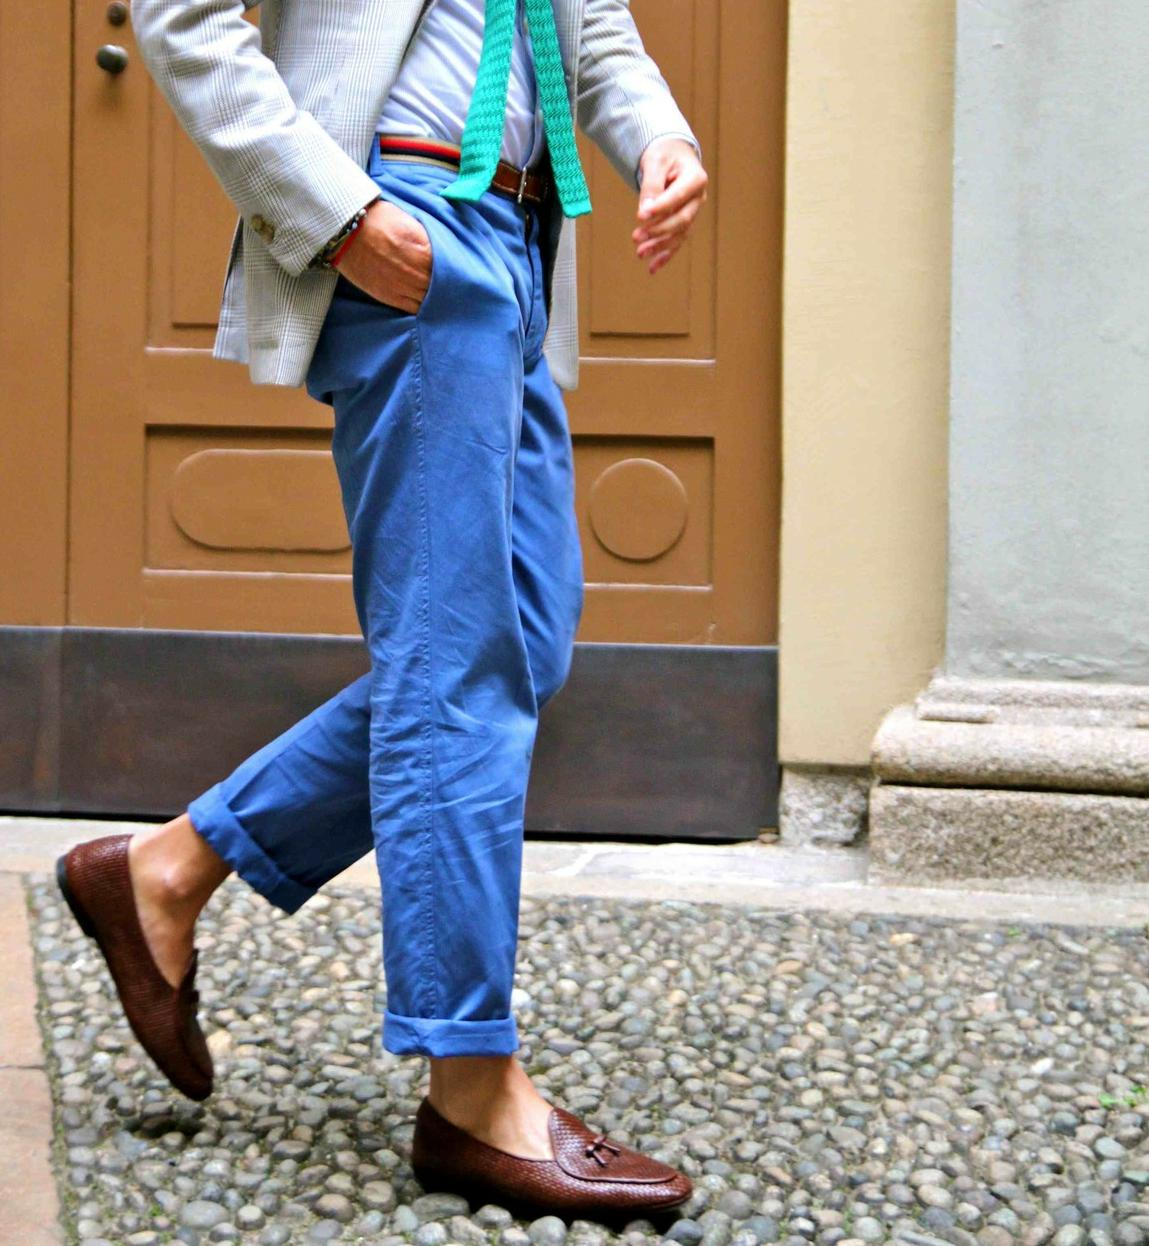 Personally, I think navy chinos are deceptively difficult to pair with. I find that a shirt with a different shade of blue usually looks good, with brown shoes/belt/watch. White shirts work with anything, and I think a charcoal shirt or sweater looks good too.